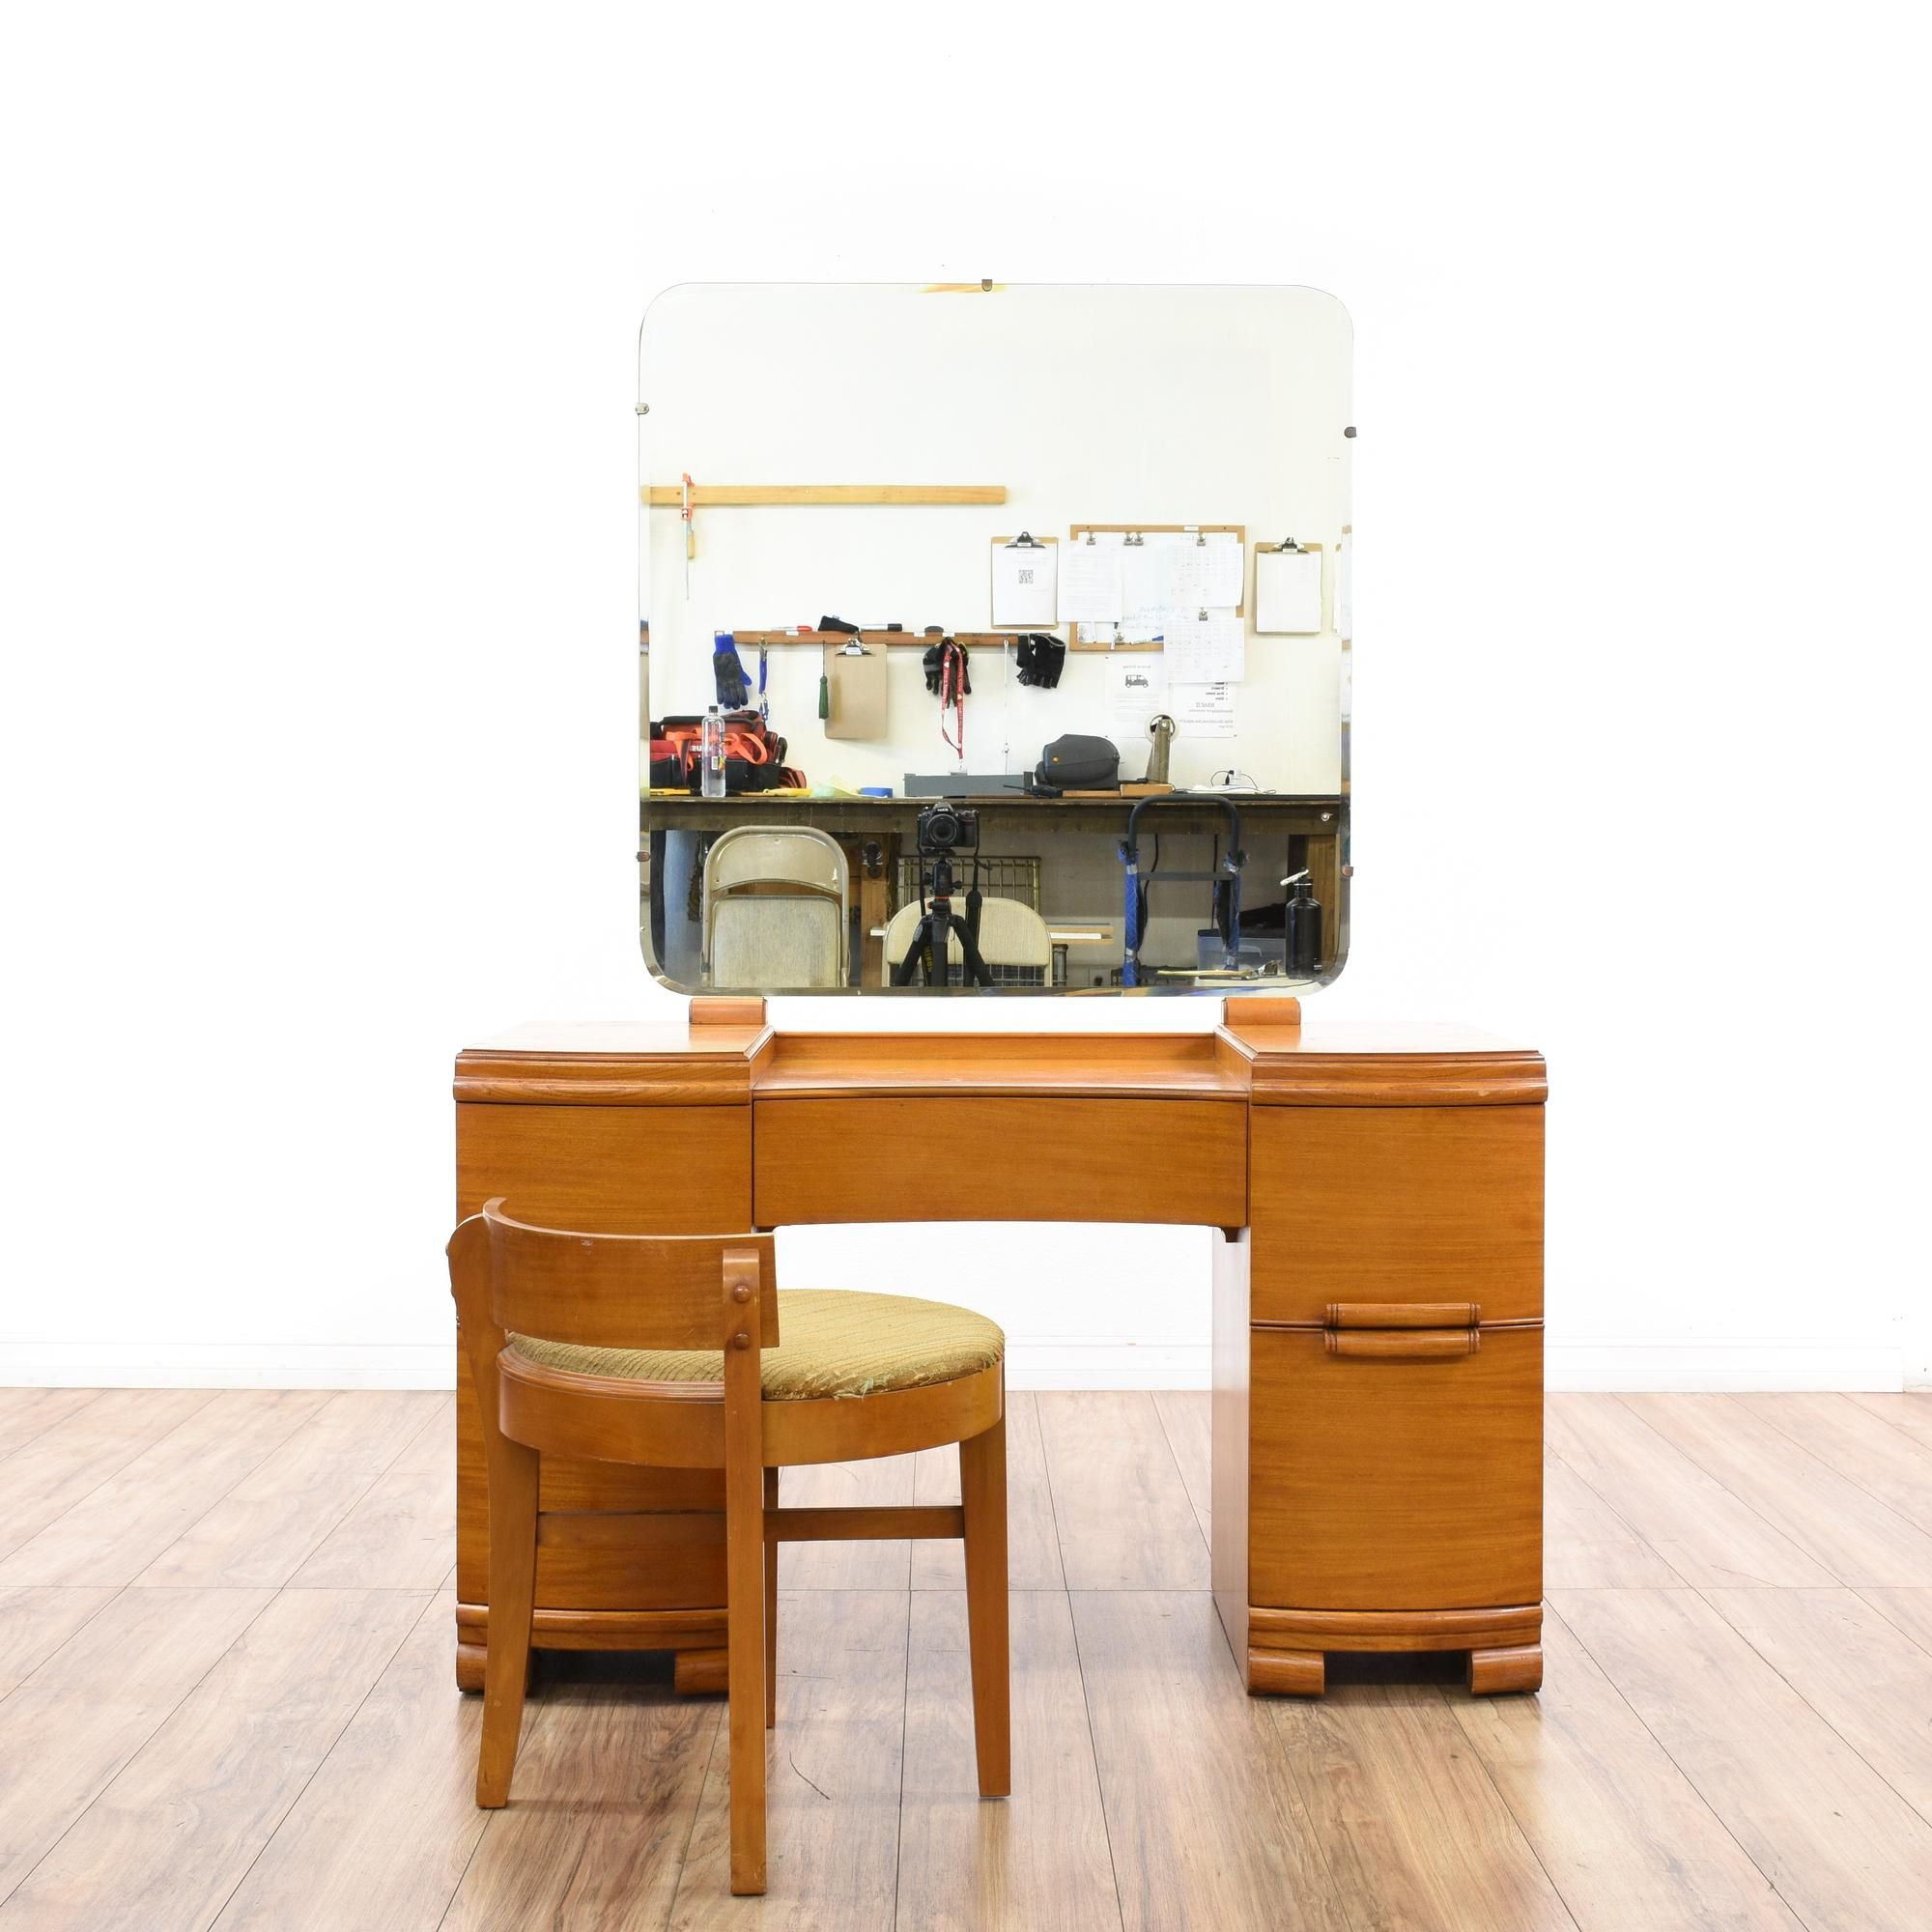 """This """"Huntley"""" vanity and bench is featured in a solid wood with a glossy light maple finish. This art deco vanity dresser has 5 curved drawers, a mirror top and a round stool bench. Stunning storage piece perfect for accenting a bedroom! #cottagechic #tables #vanity #sandiegovintage #vintagefurniture"""